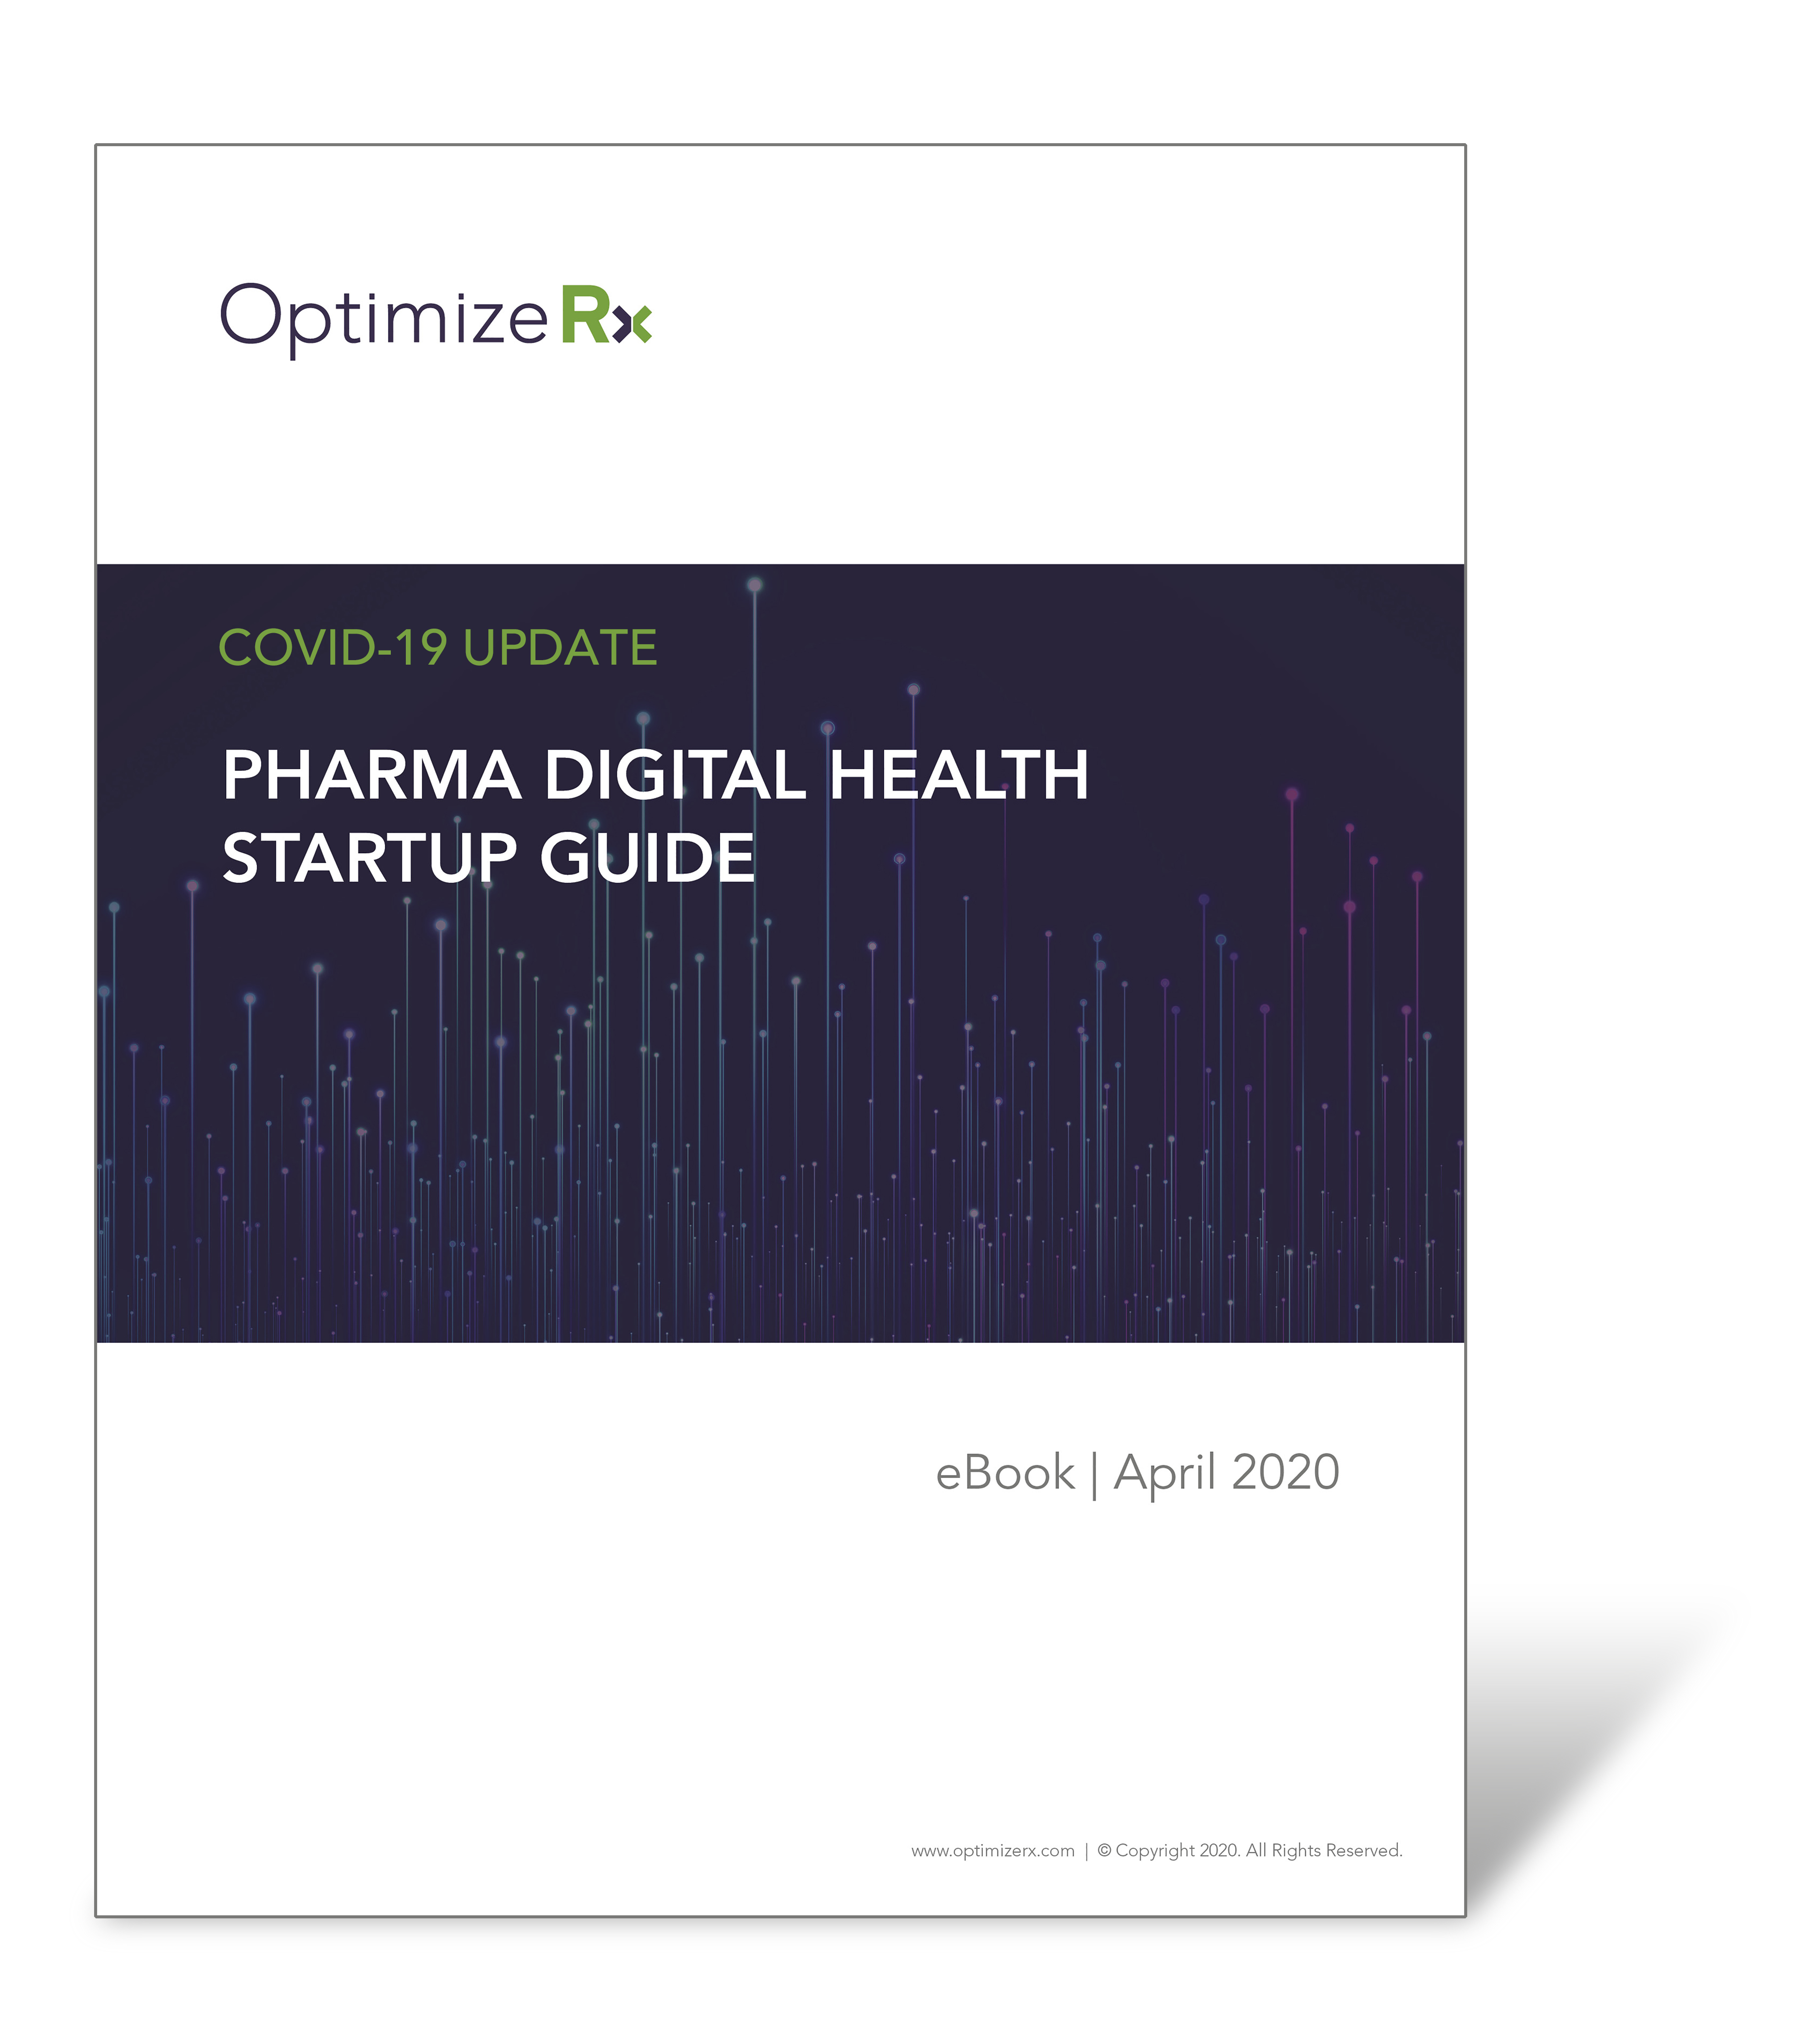 OPRX_Digital_Health_Start_Up_Guide_Landing_Page_Cover_COVID_Update_v2